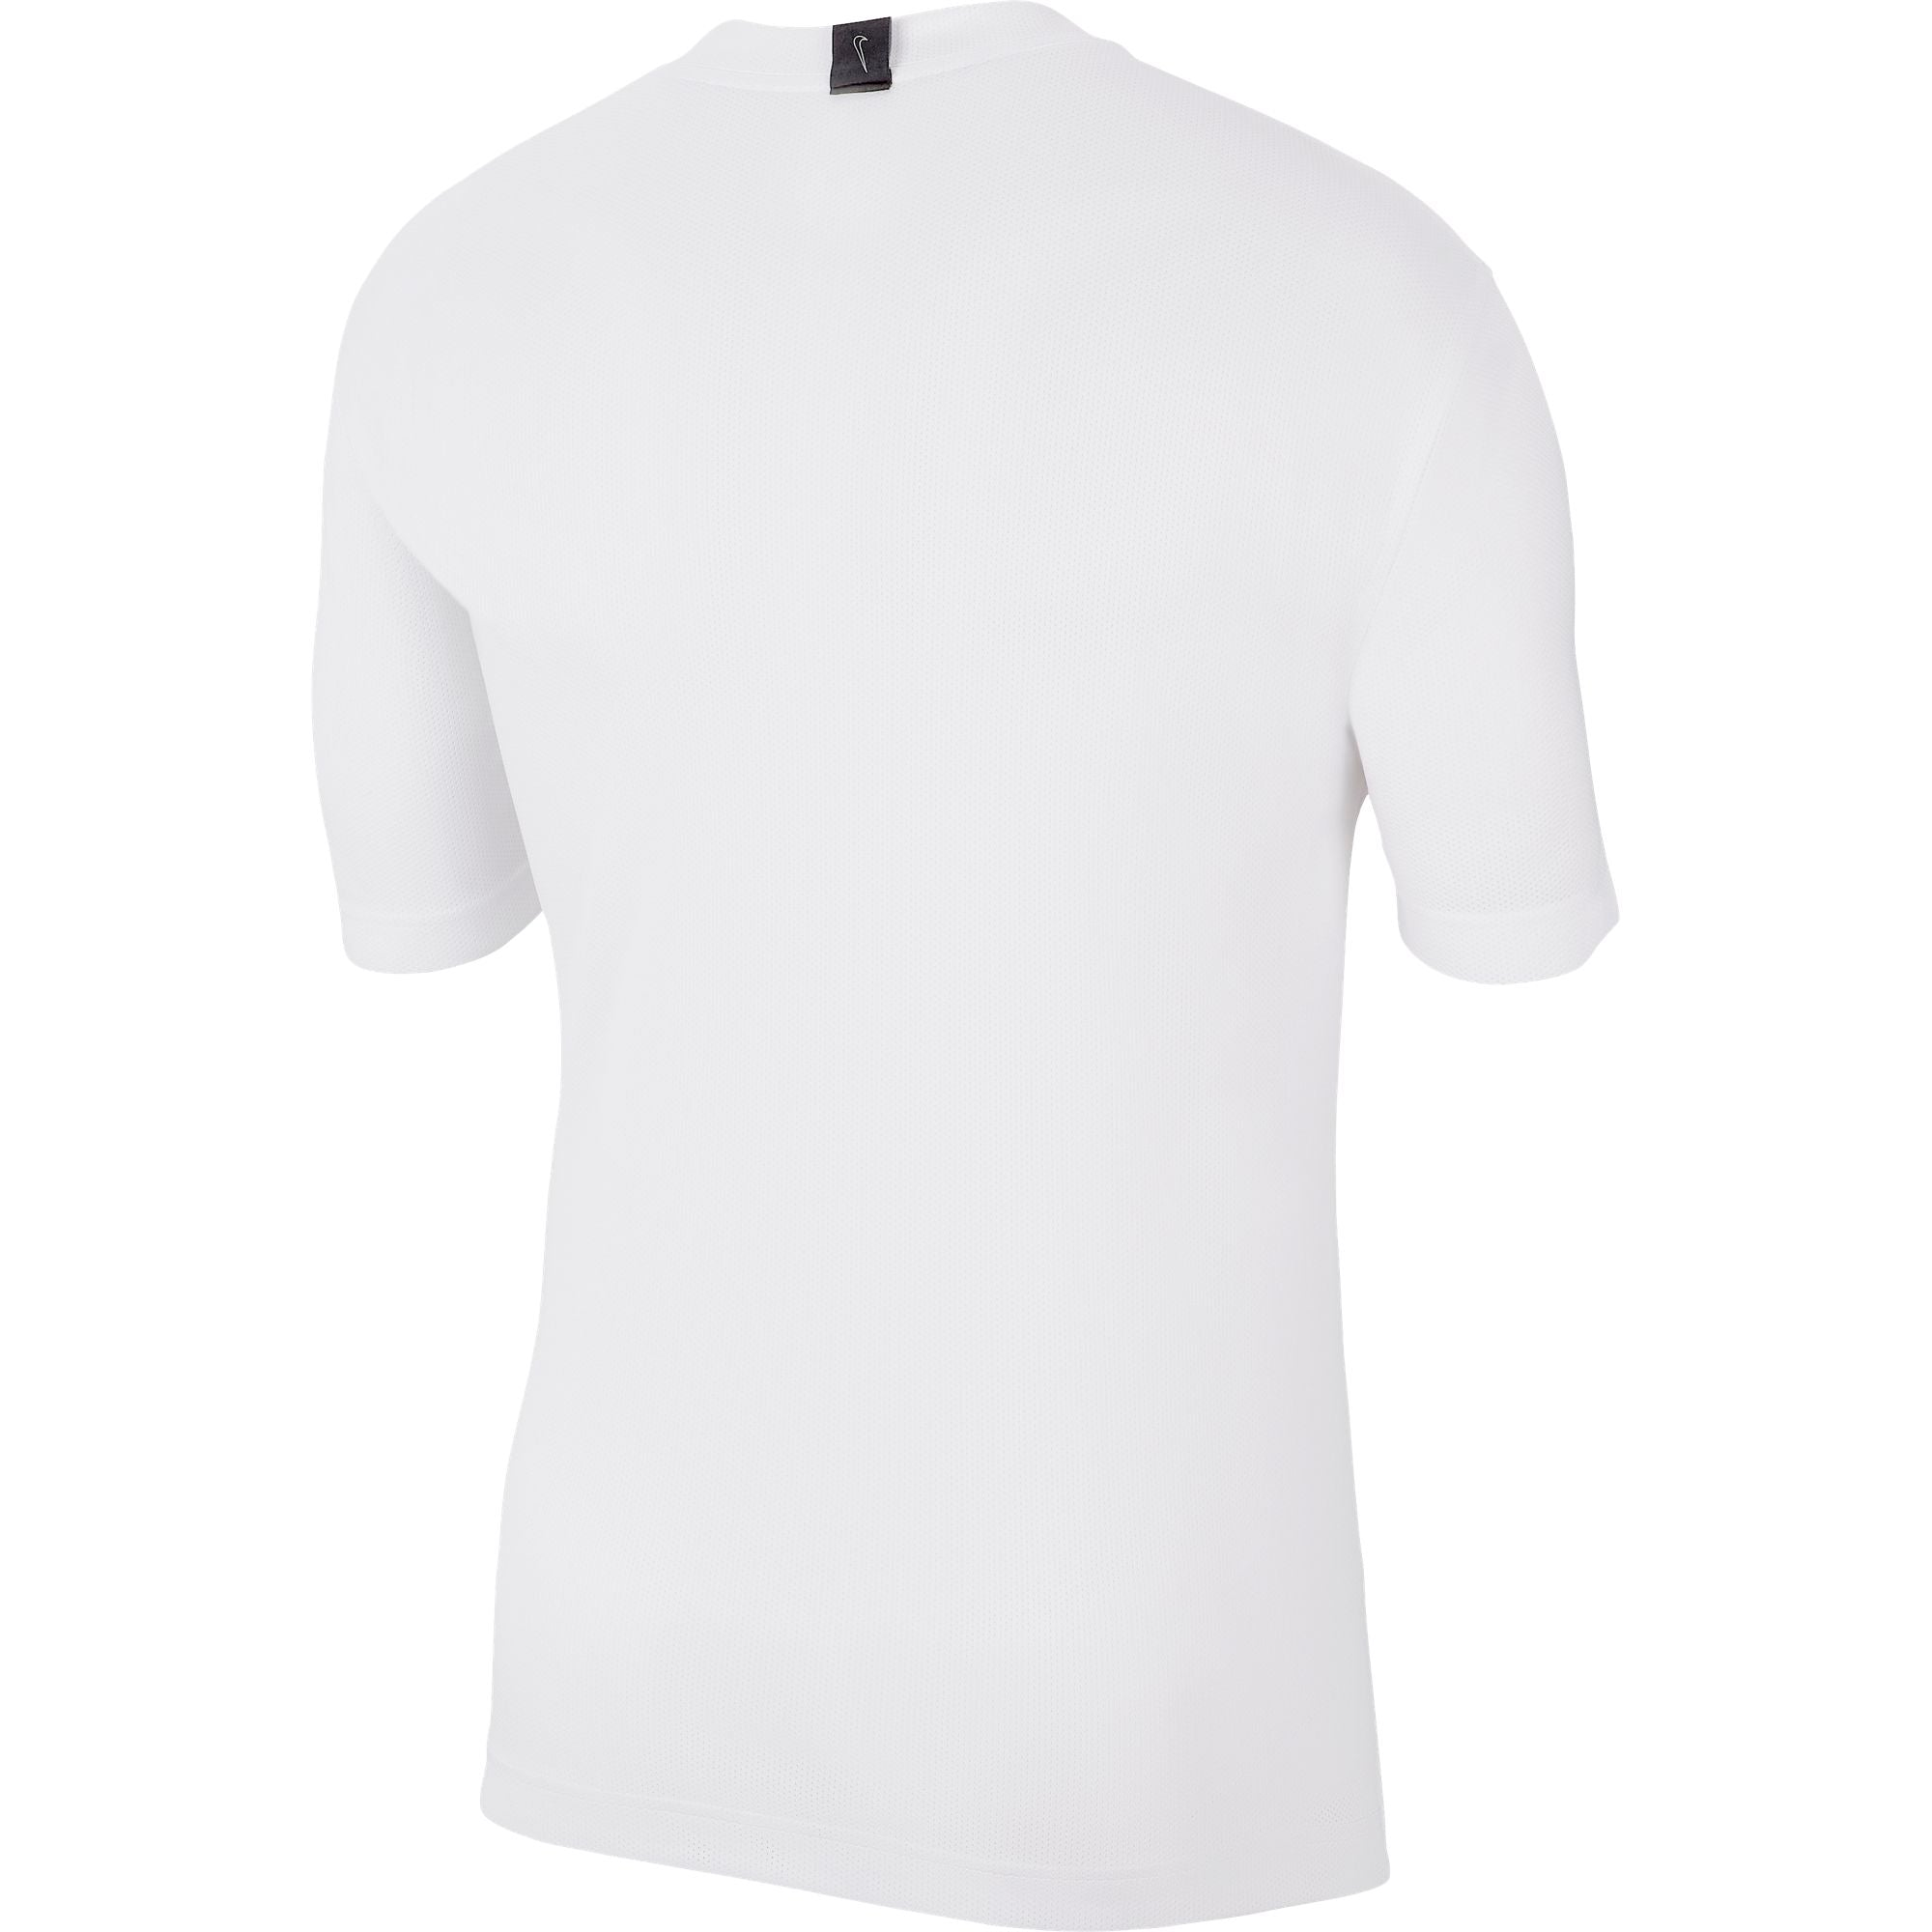 Nike Basketball Dri-Fit Classic Short Sleeved Top - White/Black